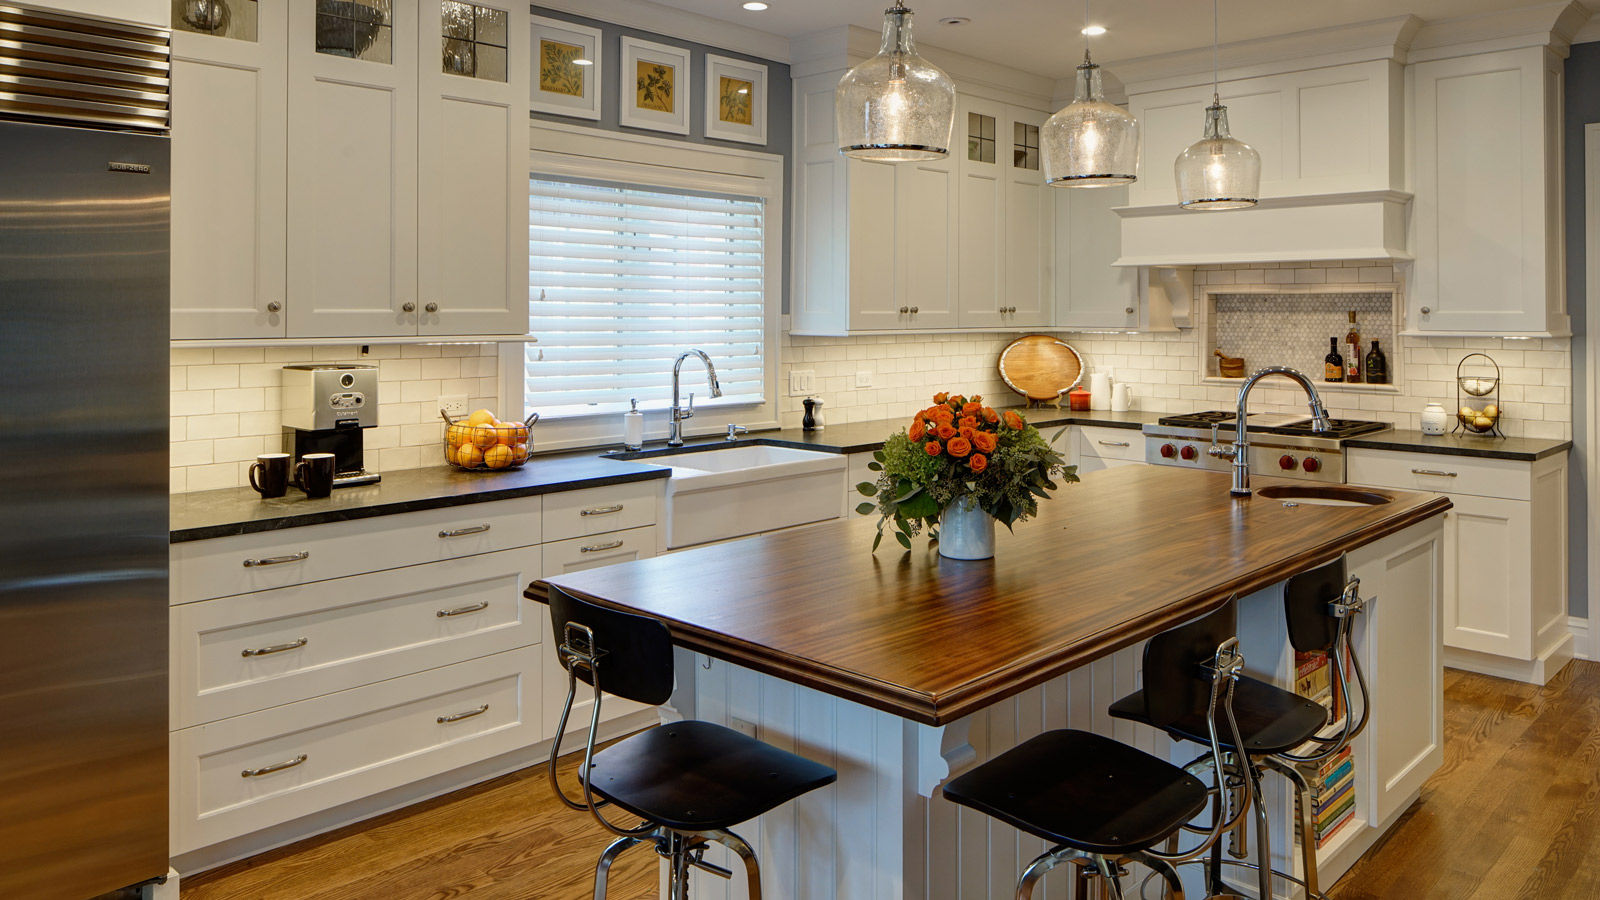 36 x 48 kitchen island seating 48 x 48 kitchen island 6 for 36 kitchen ideas